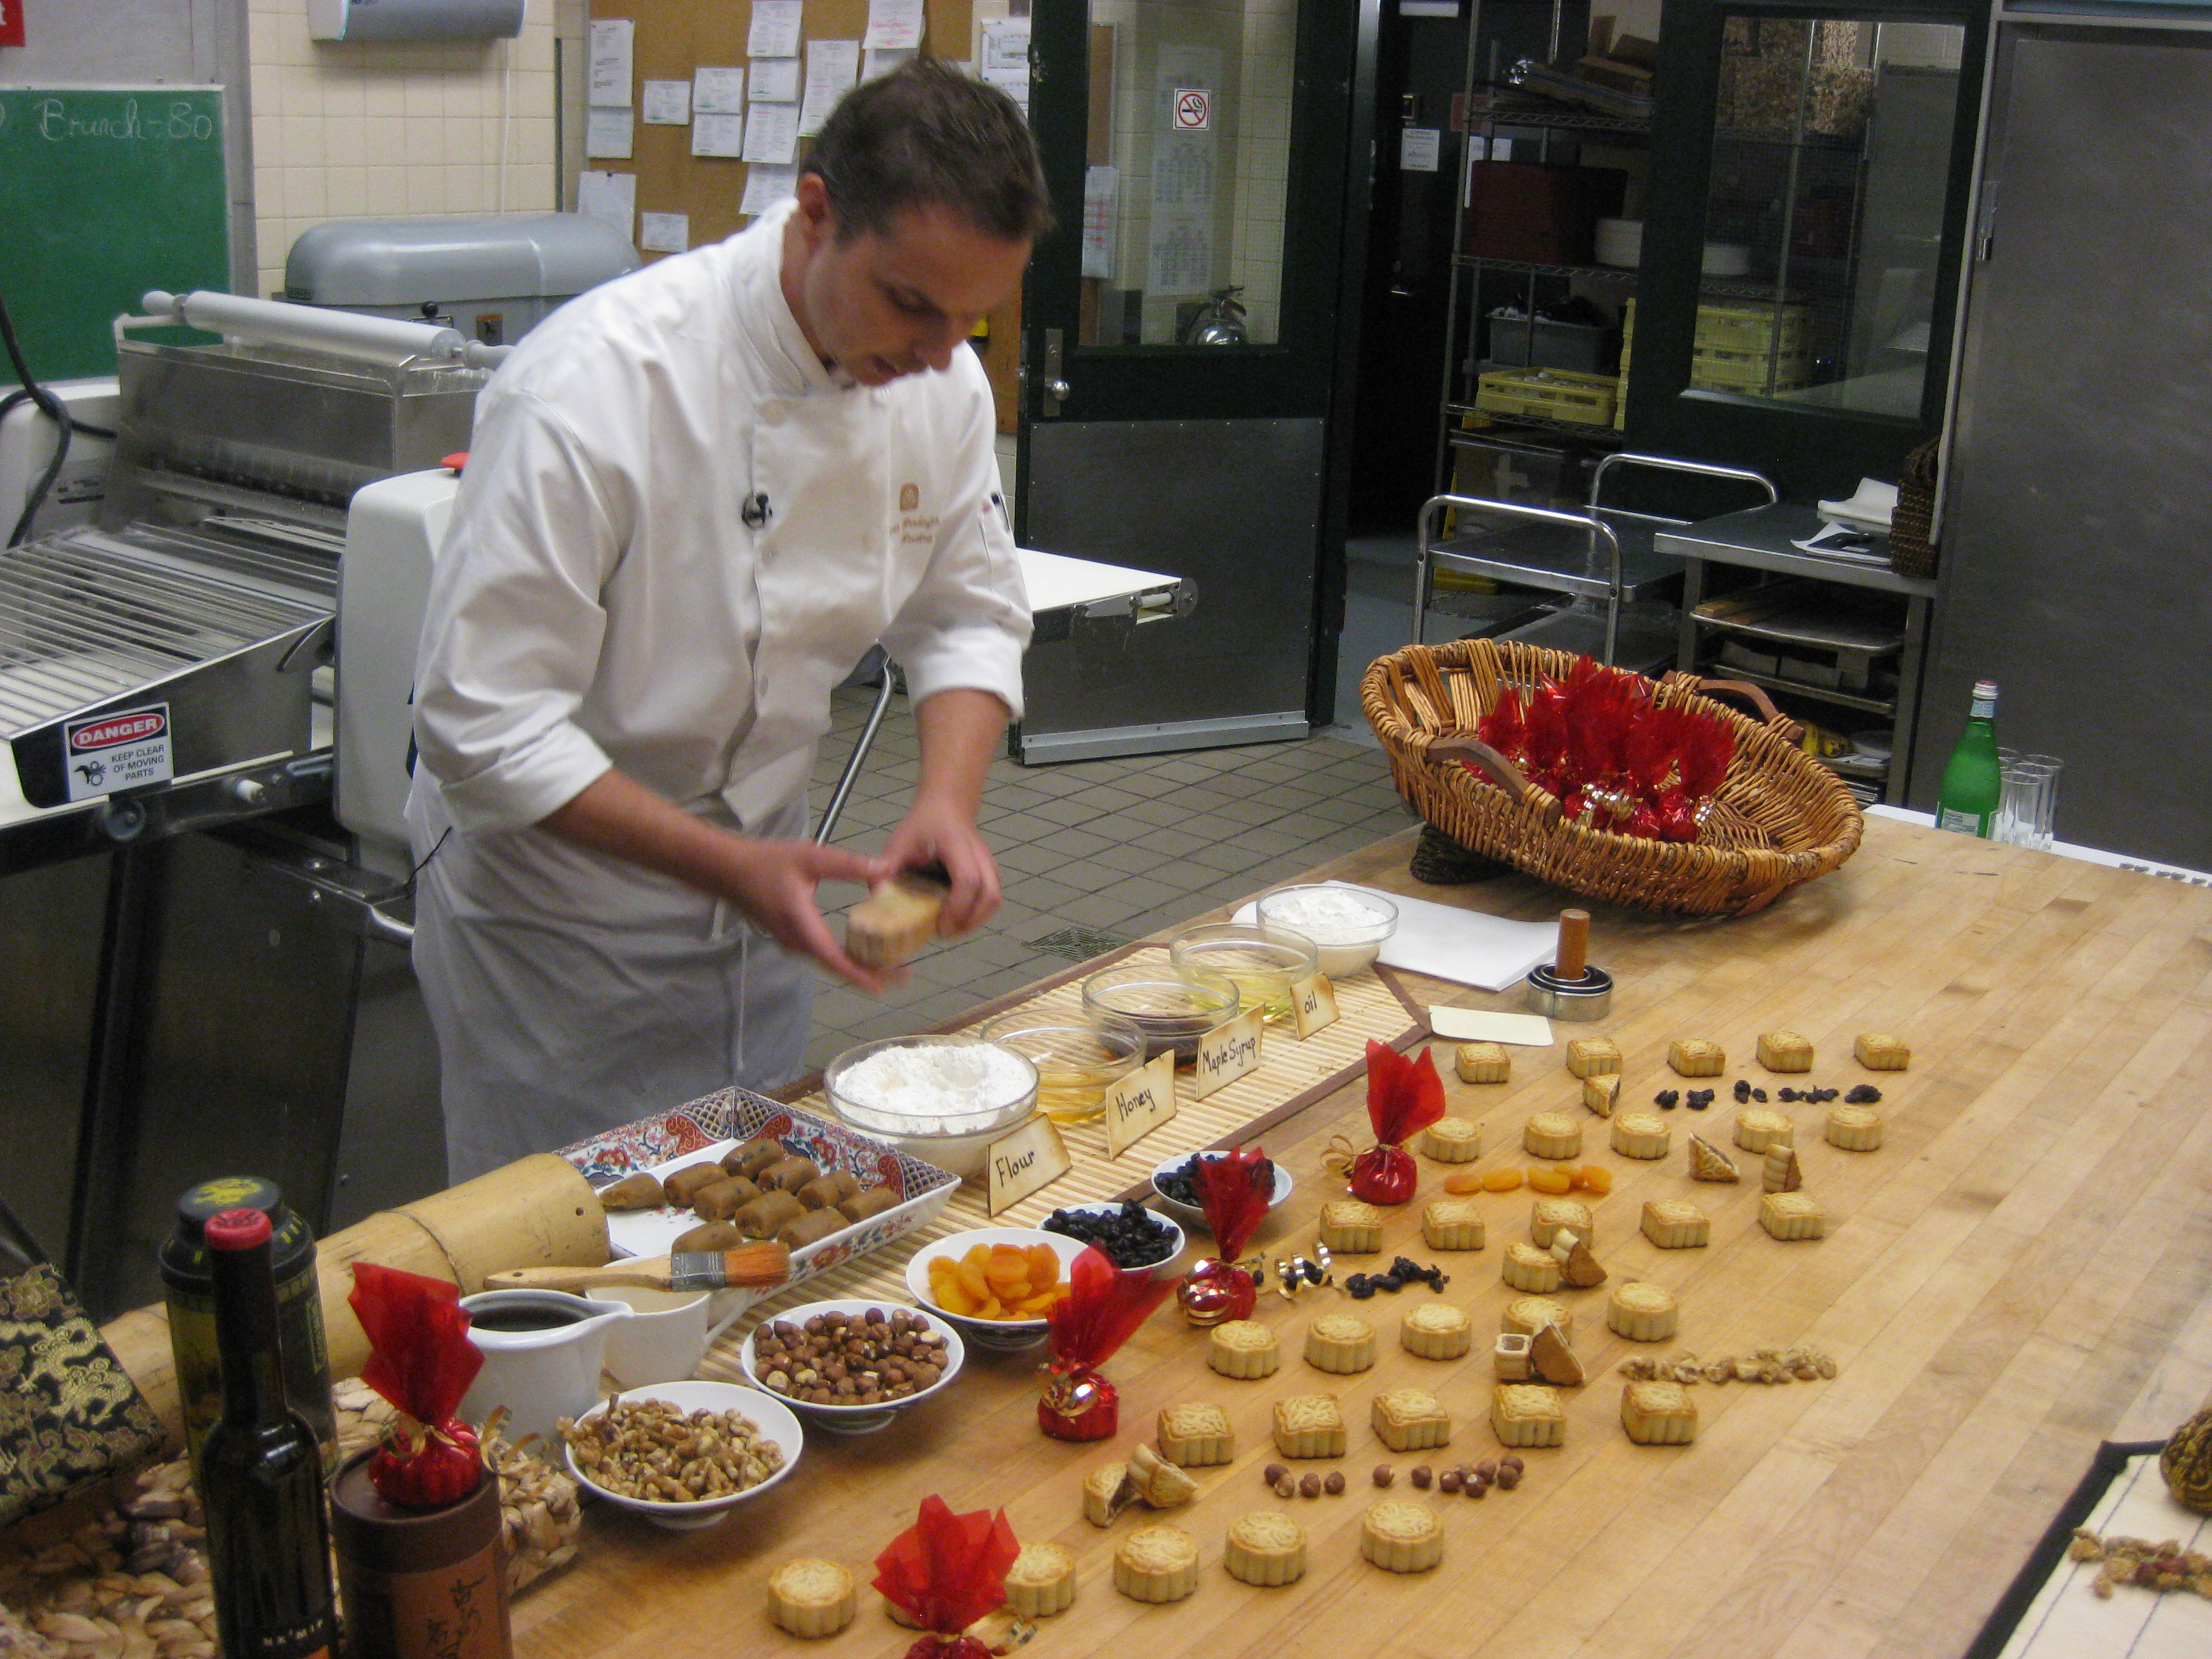 pastry chef 18 pastry chef jobs and careers on catererglobal find and apply today for the latest pastry chef jobs like head pastry chef, pastry demi chef de partie and more.